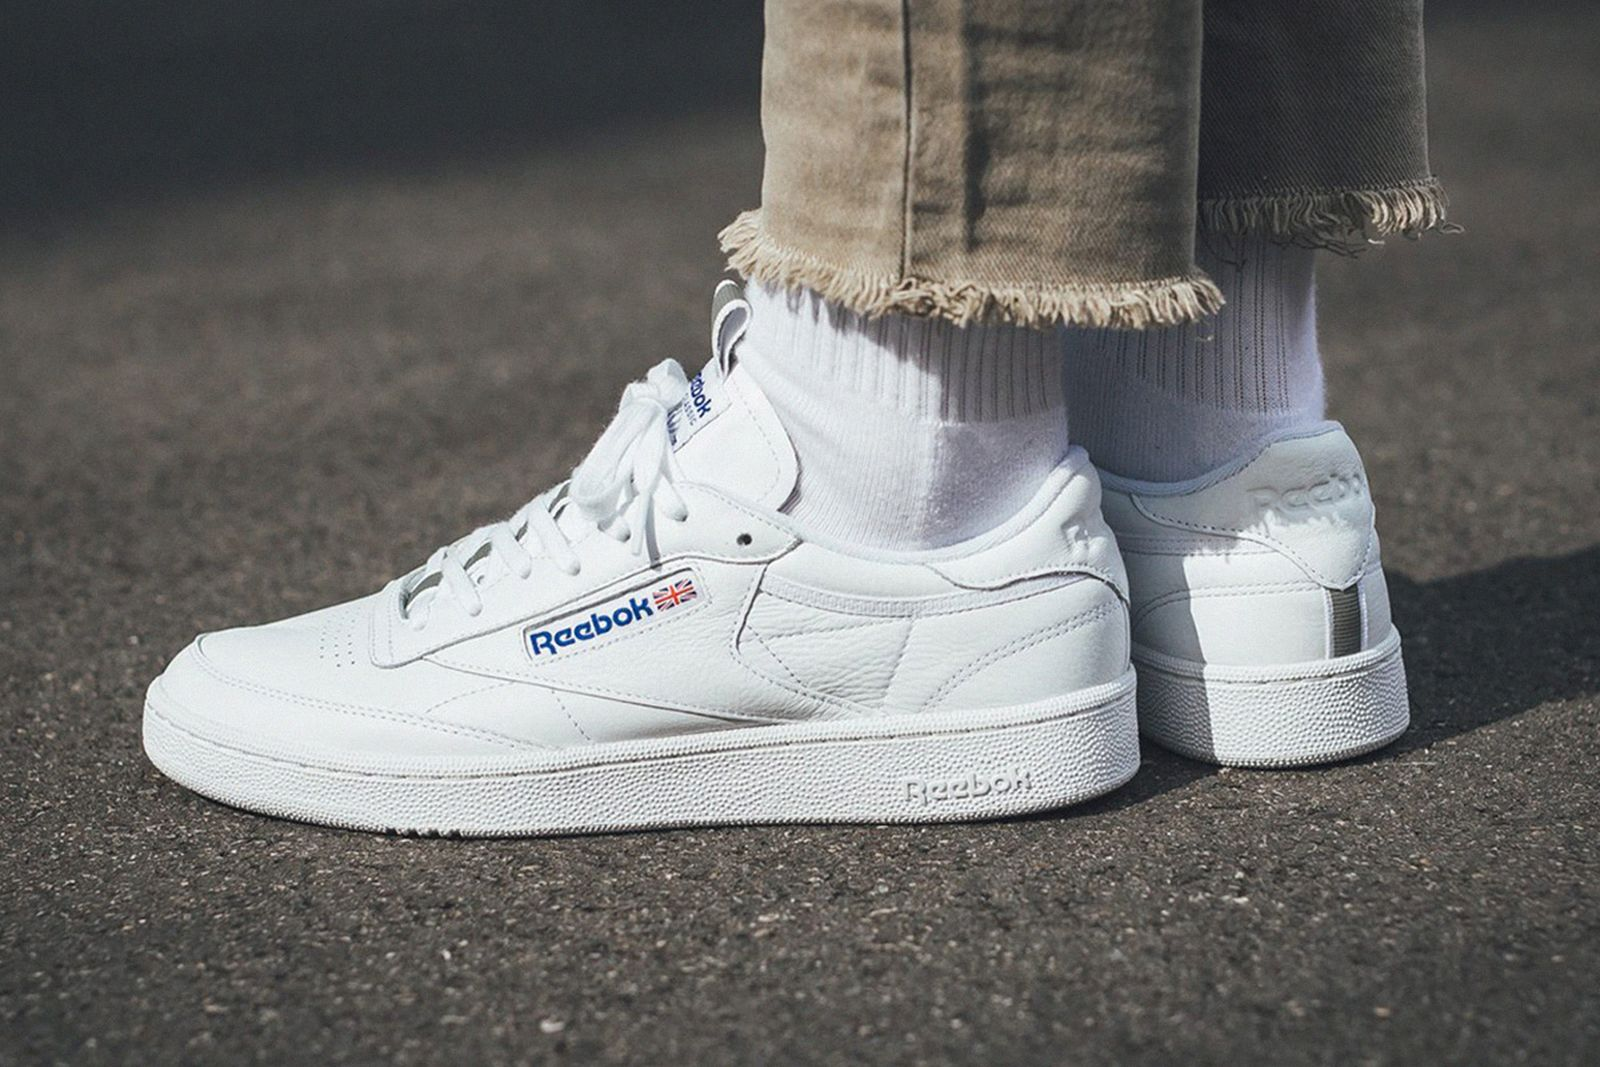 reebok club c white leather side view on-foot shot